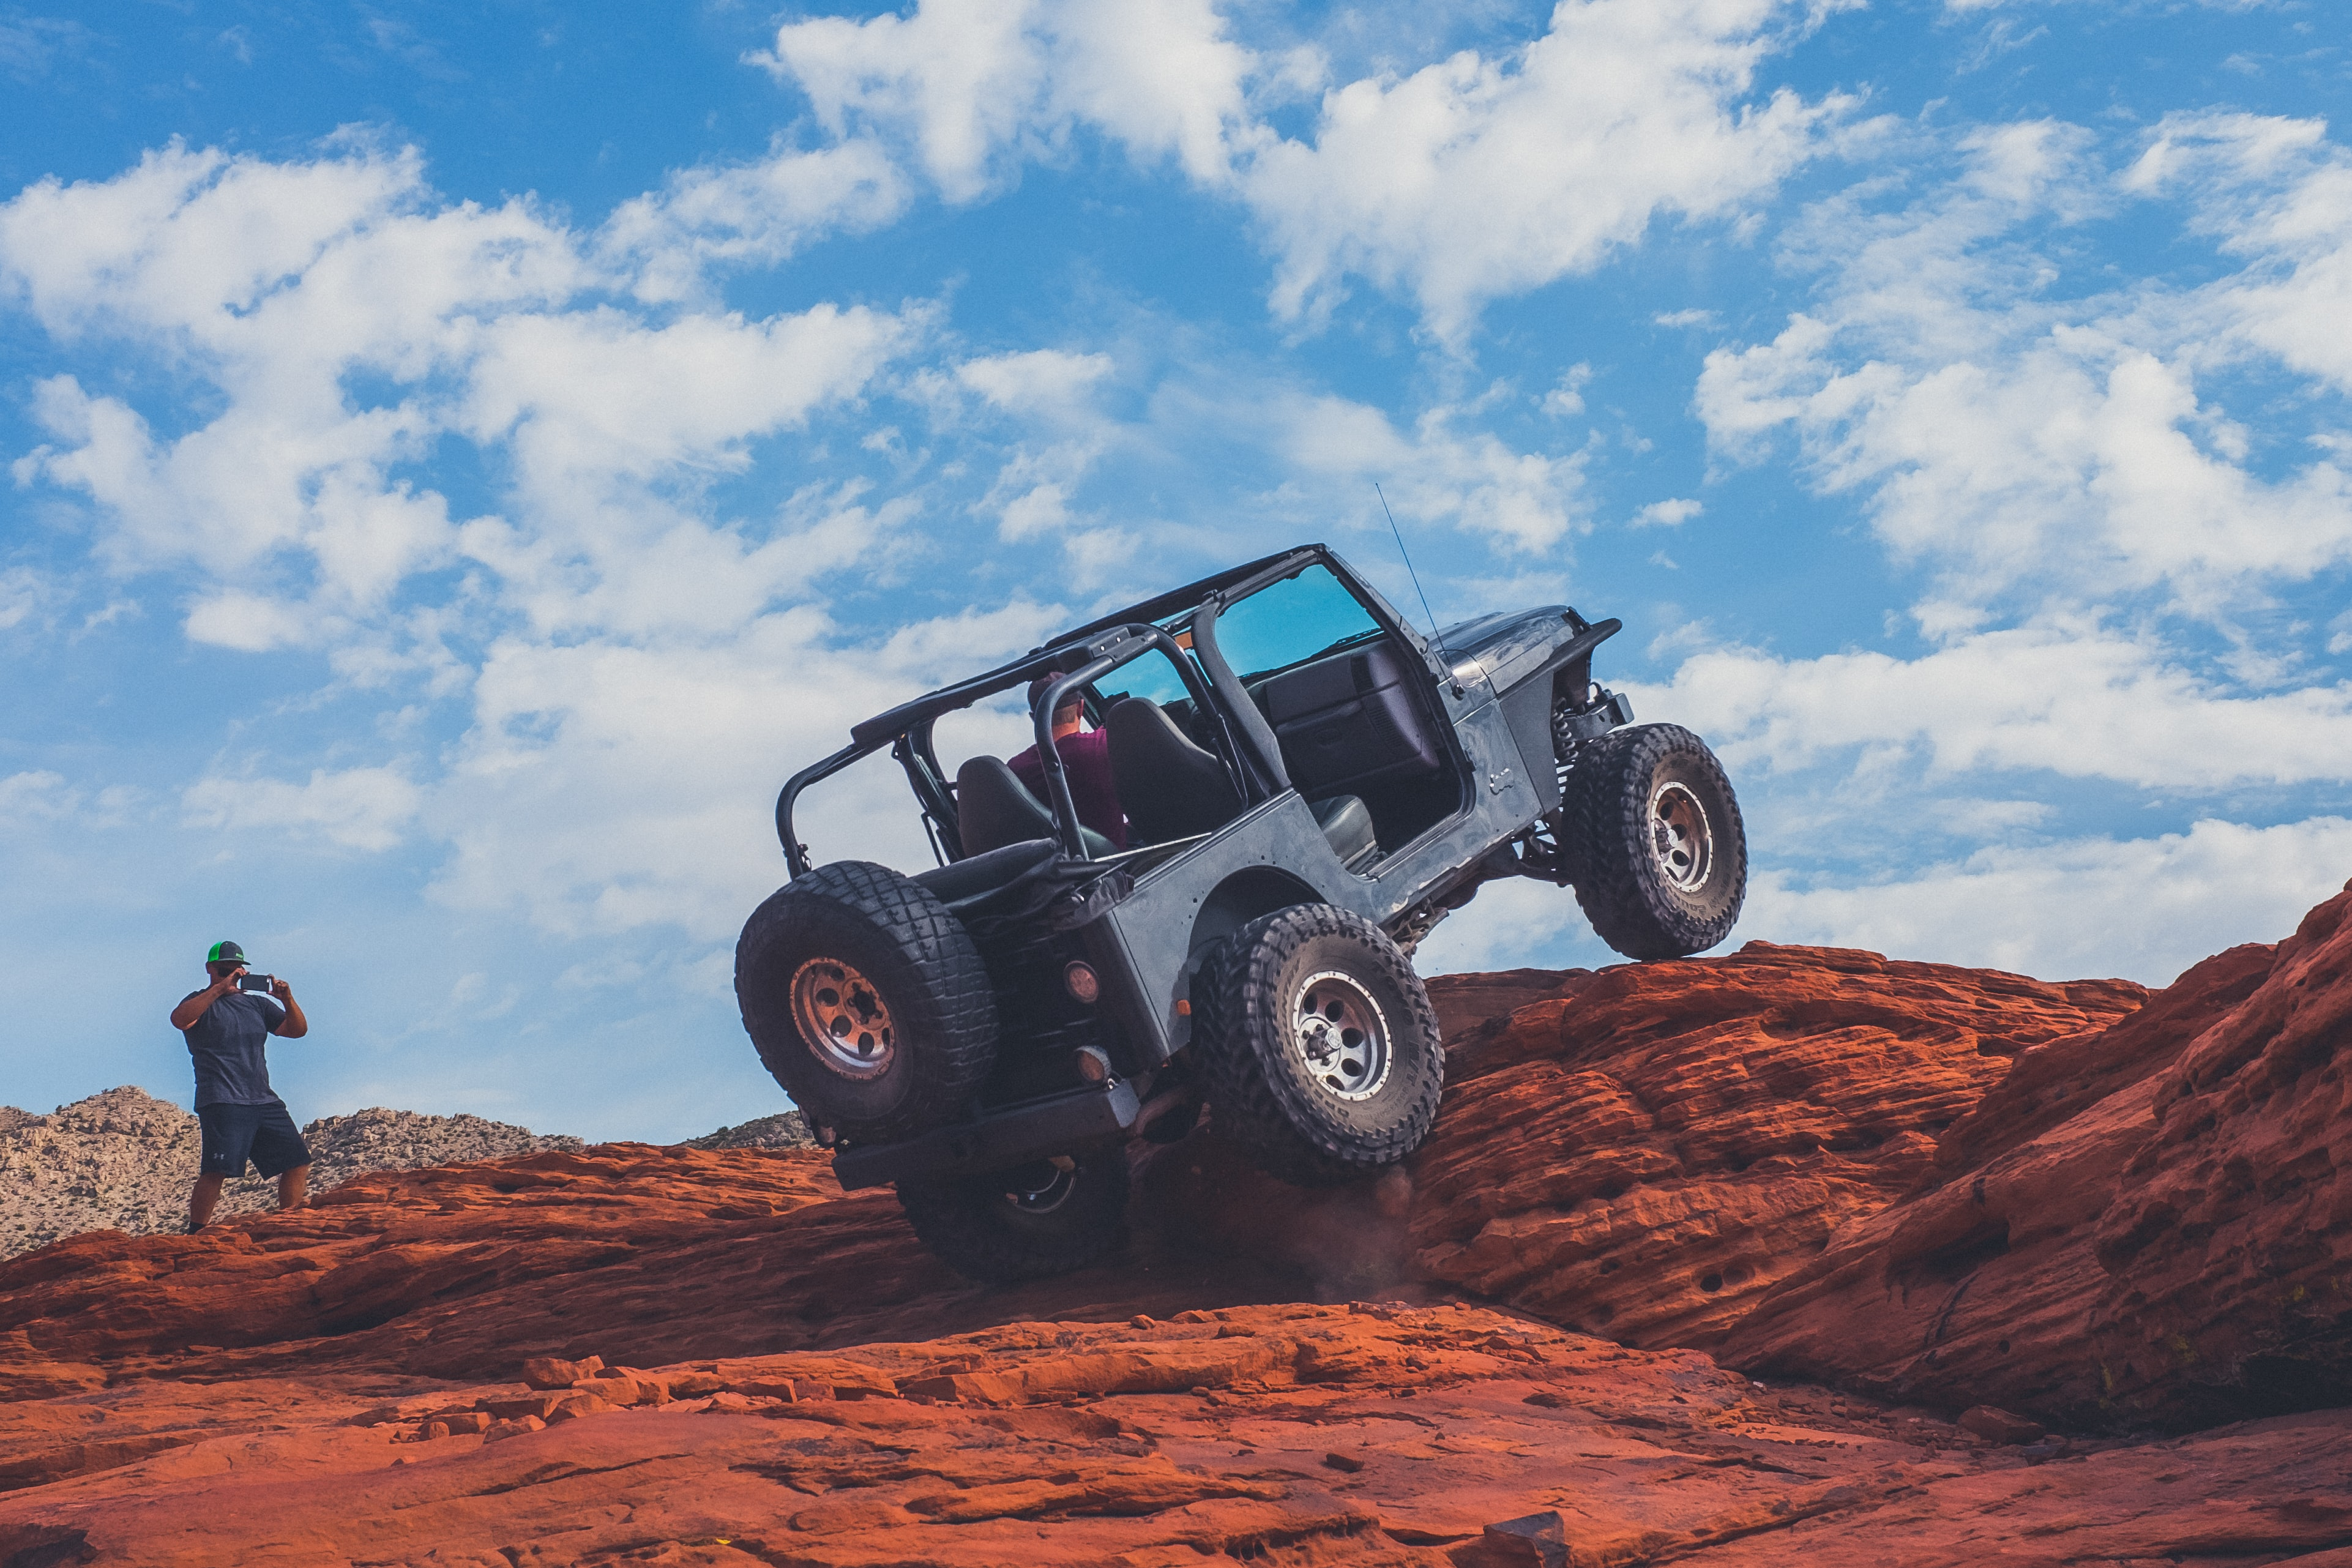 gray 4x4 vehicle climbing the rock during daytime